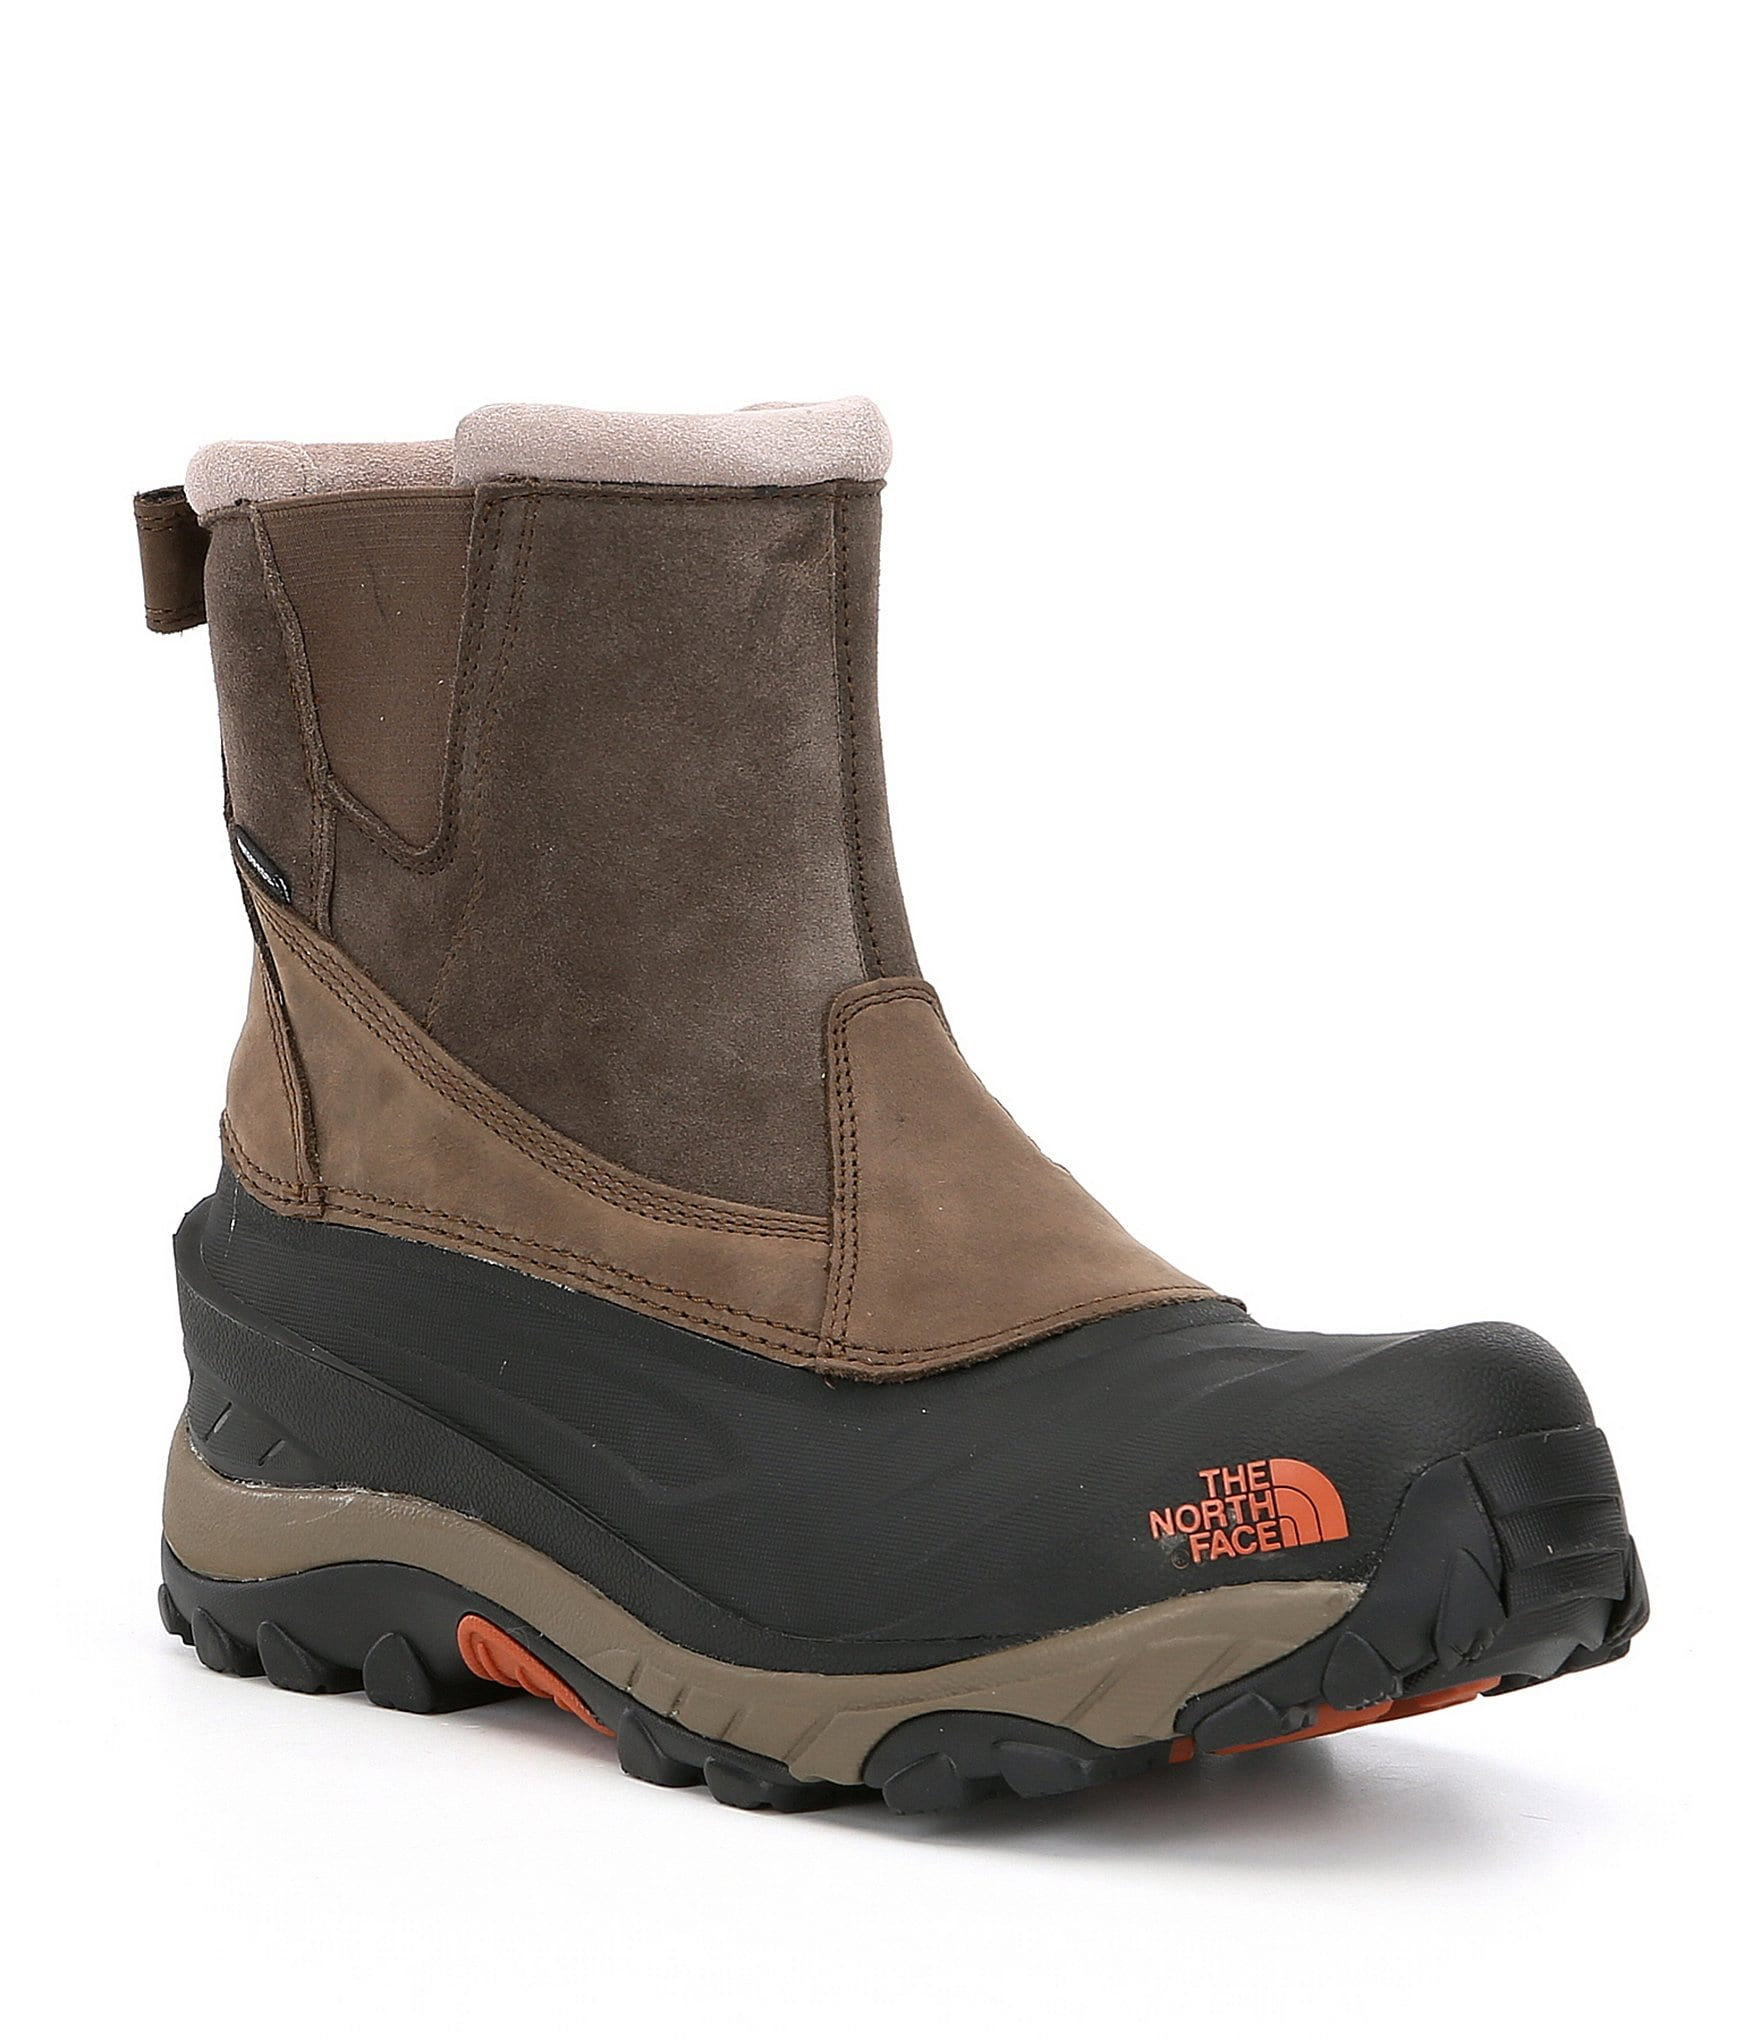 the north face men 39 s chilkat iii pull on waterproof cold weather mid boots dillards. Black Bedroom Furniture Sets. Home Design Ideas